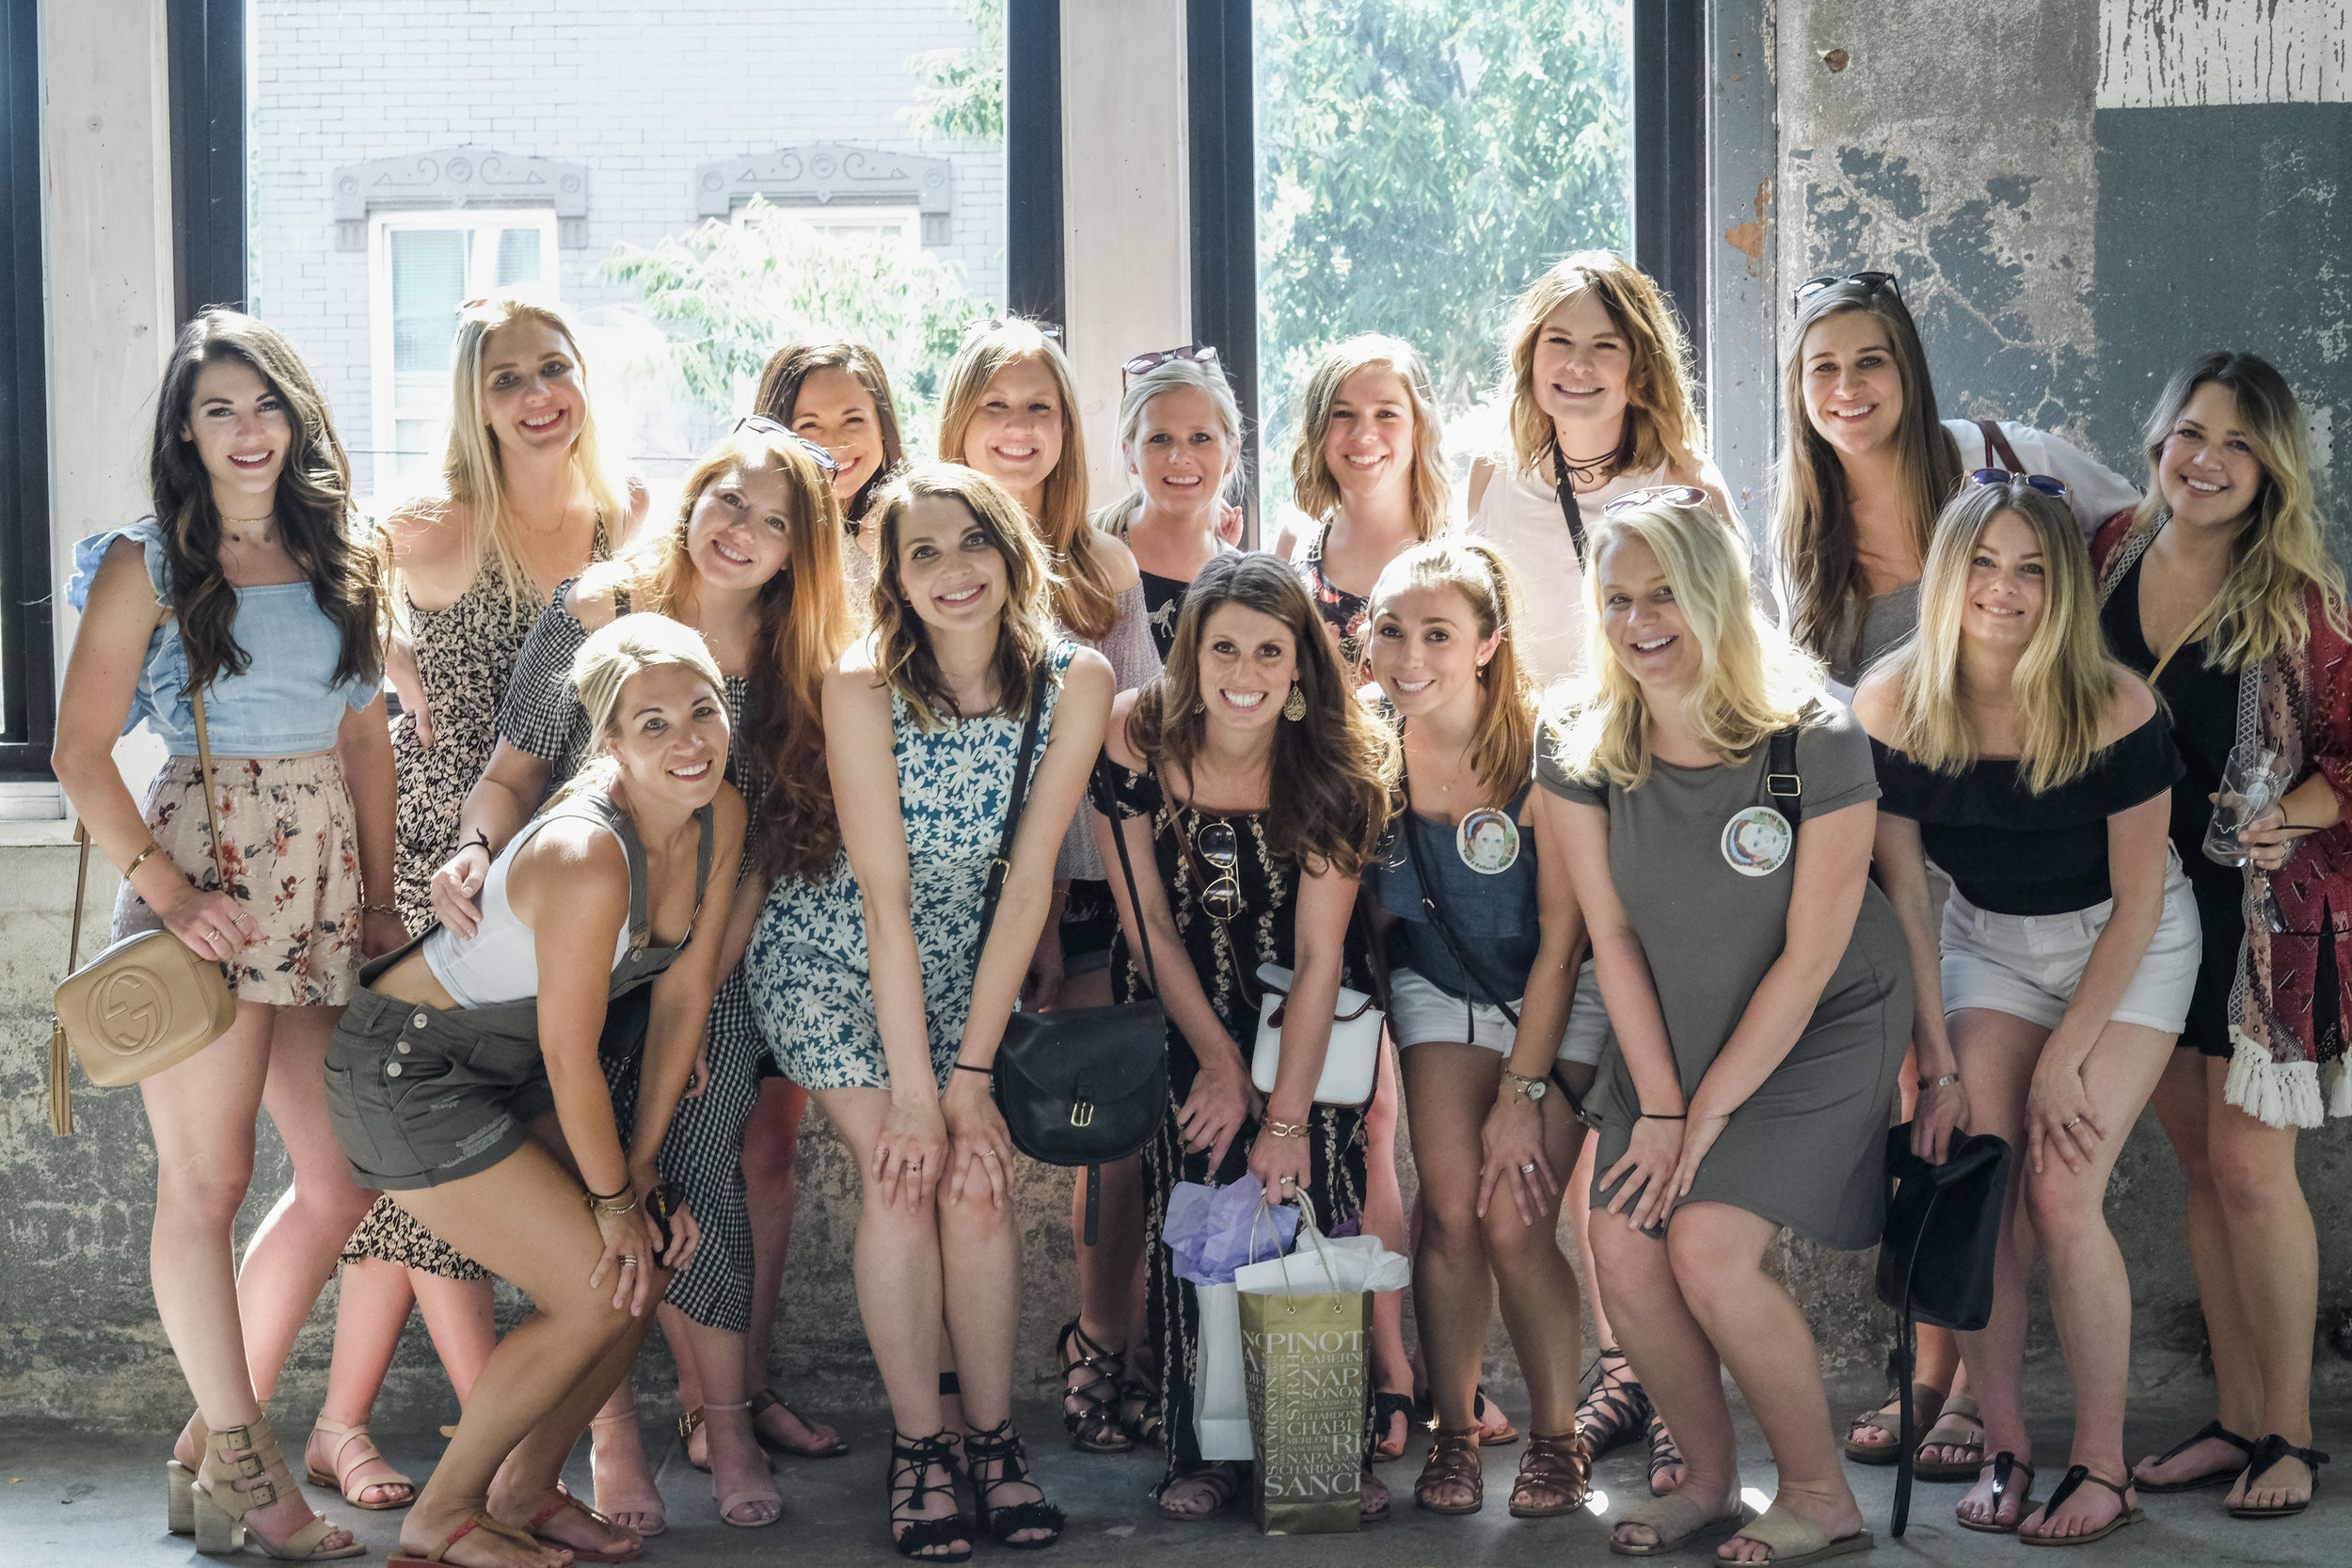 Bachelorette party in Cincinnati Ohio, Fun things to do in Cincinnati, Ohio: Rhinegeist brewery.